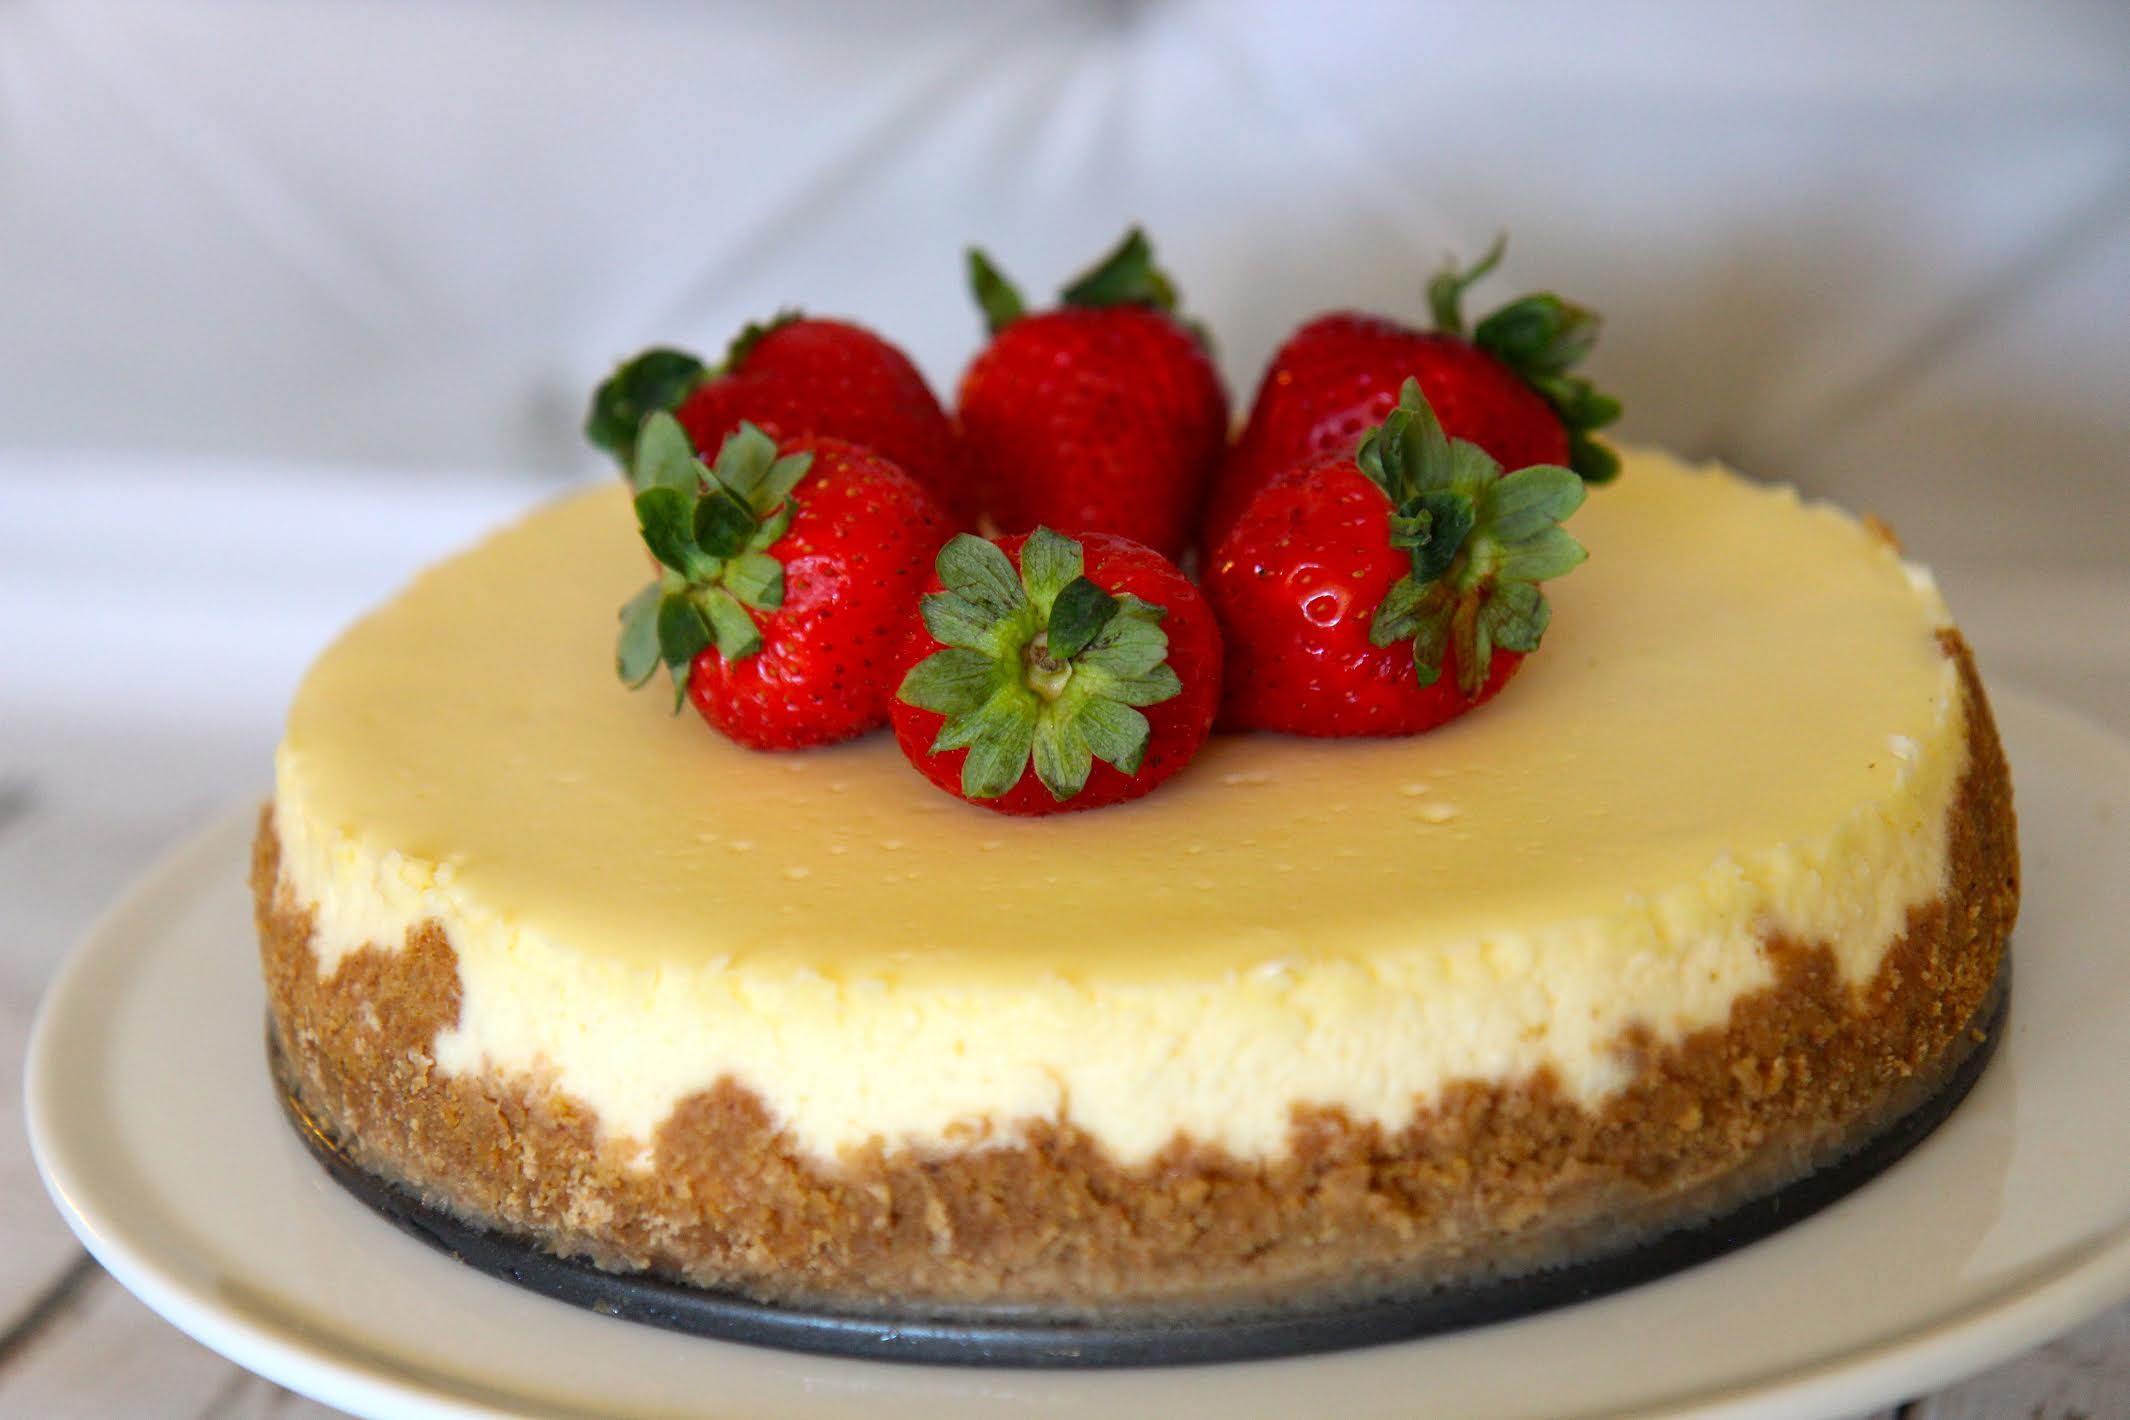 Plain Homemade cheesecake with a graham cracker crust and topped with strawberries.